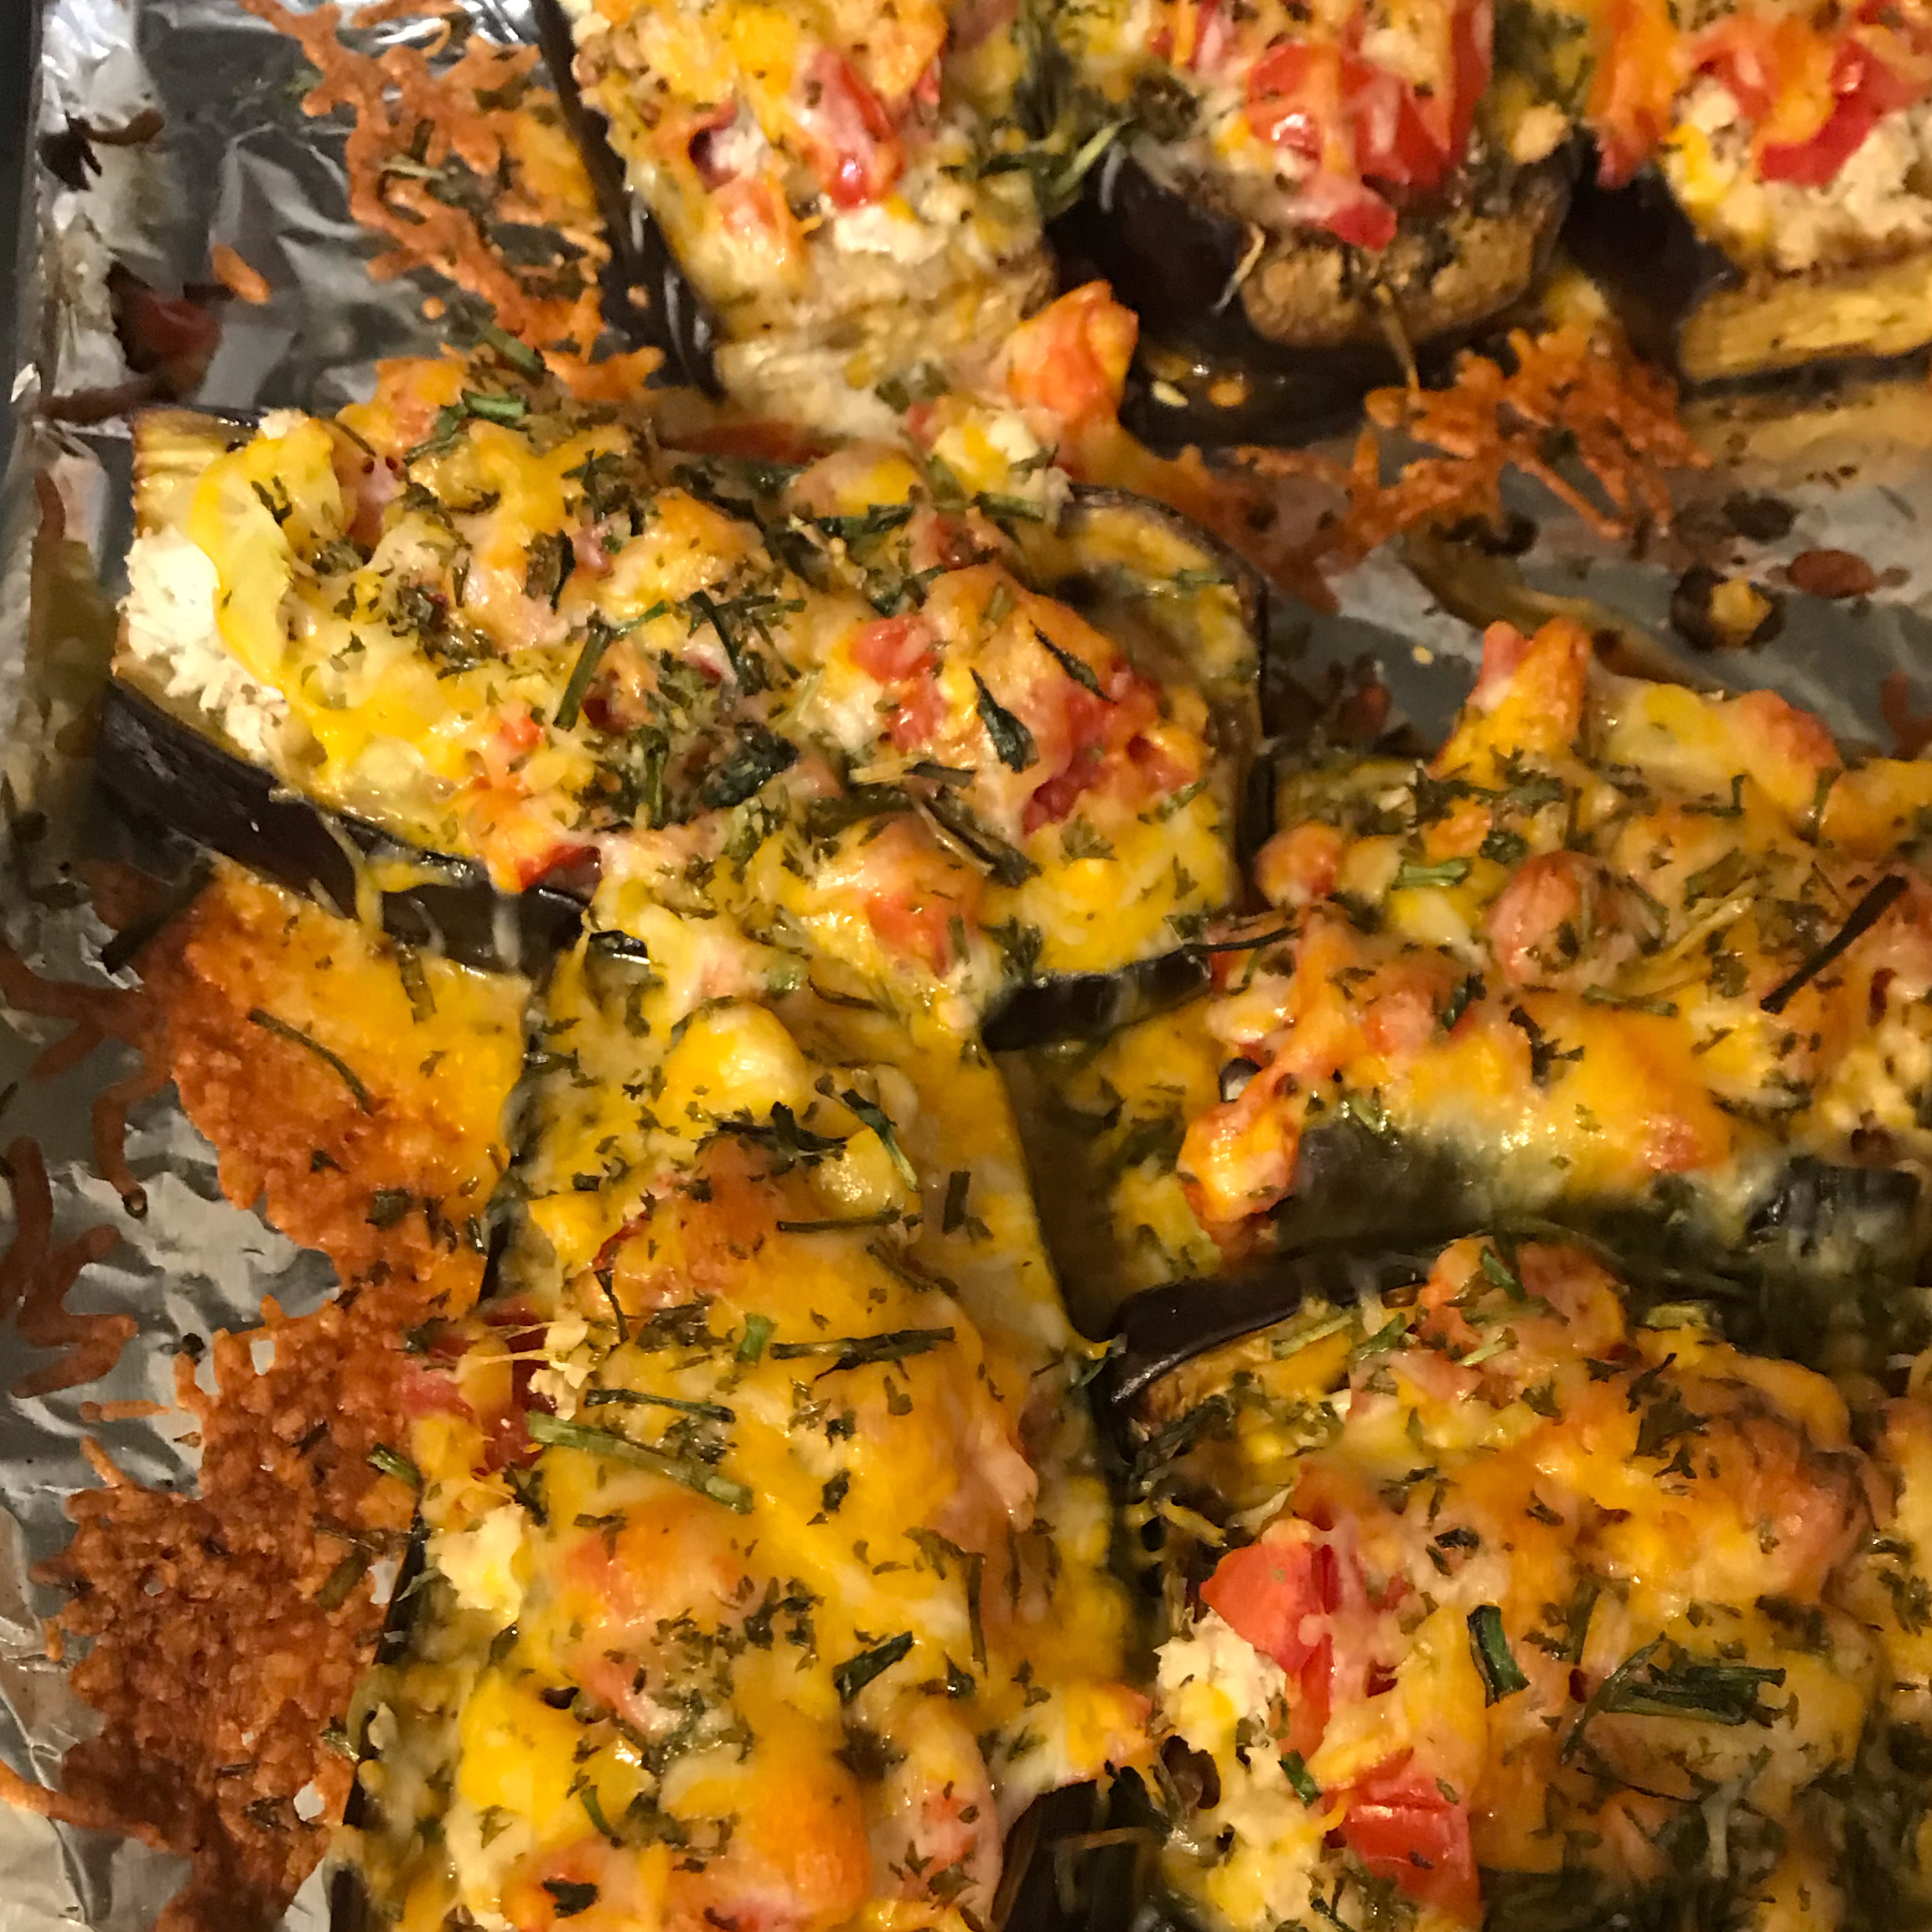 Eggplant Stuffed with Chicken and Cheese